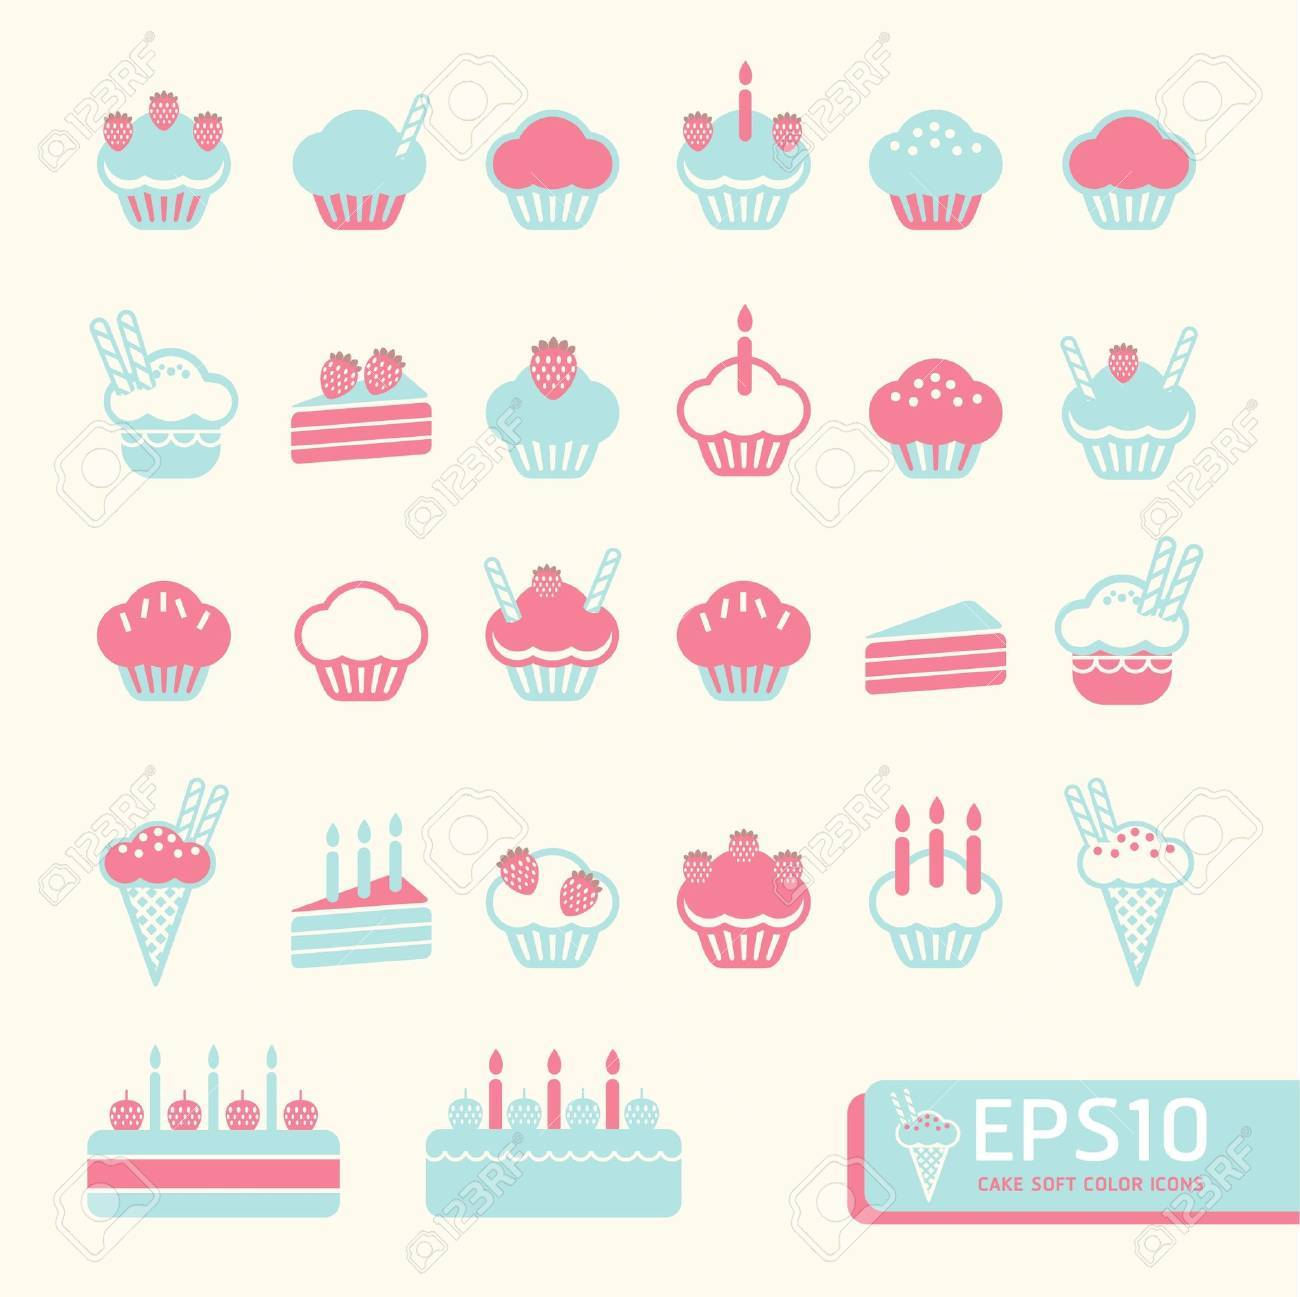 cup cake soft color   Vector illustration Stock Vector - 15534189